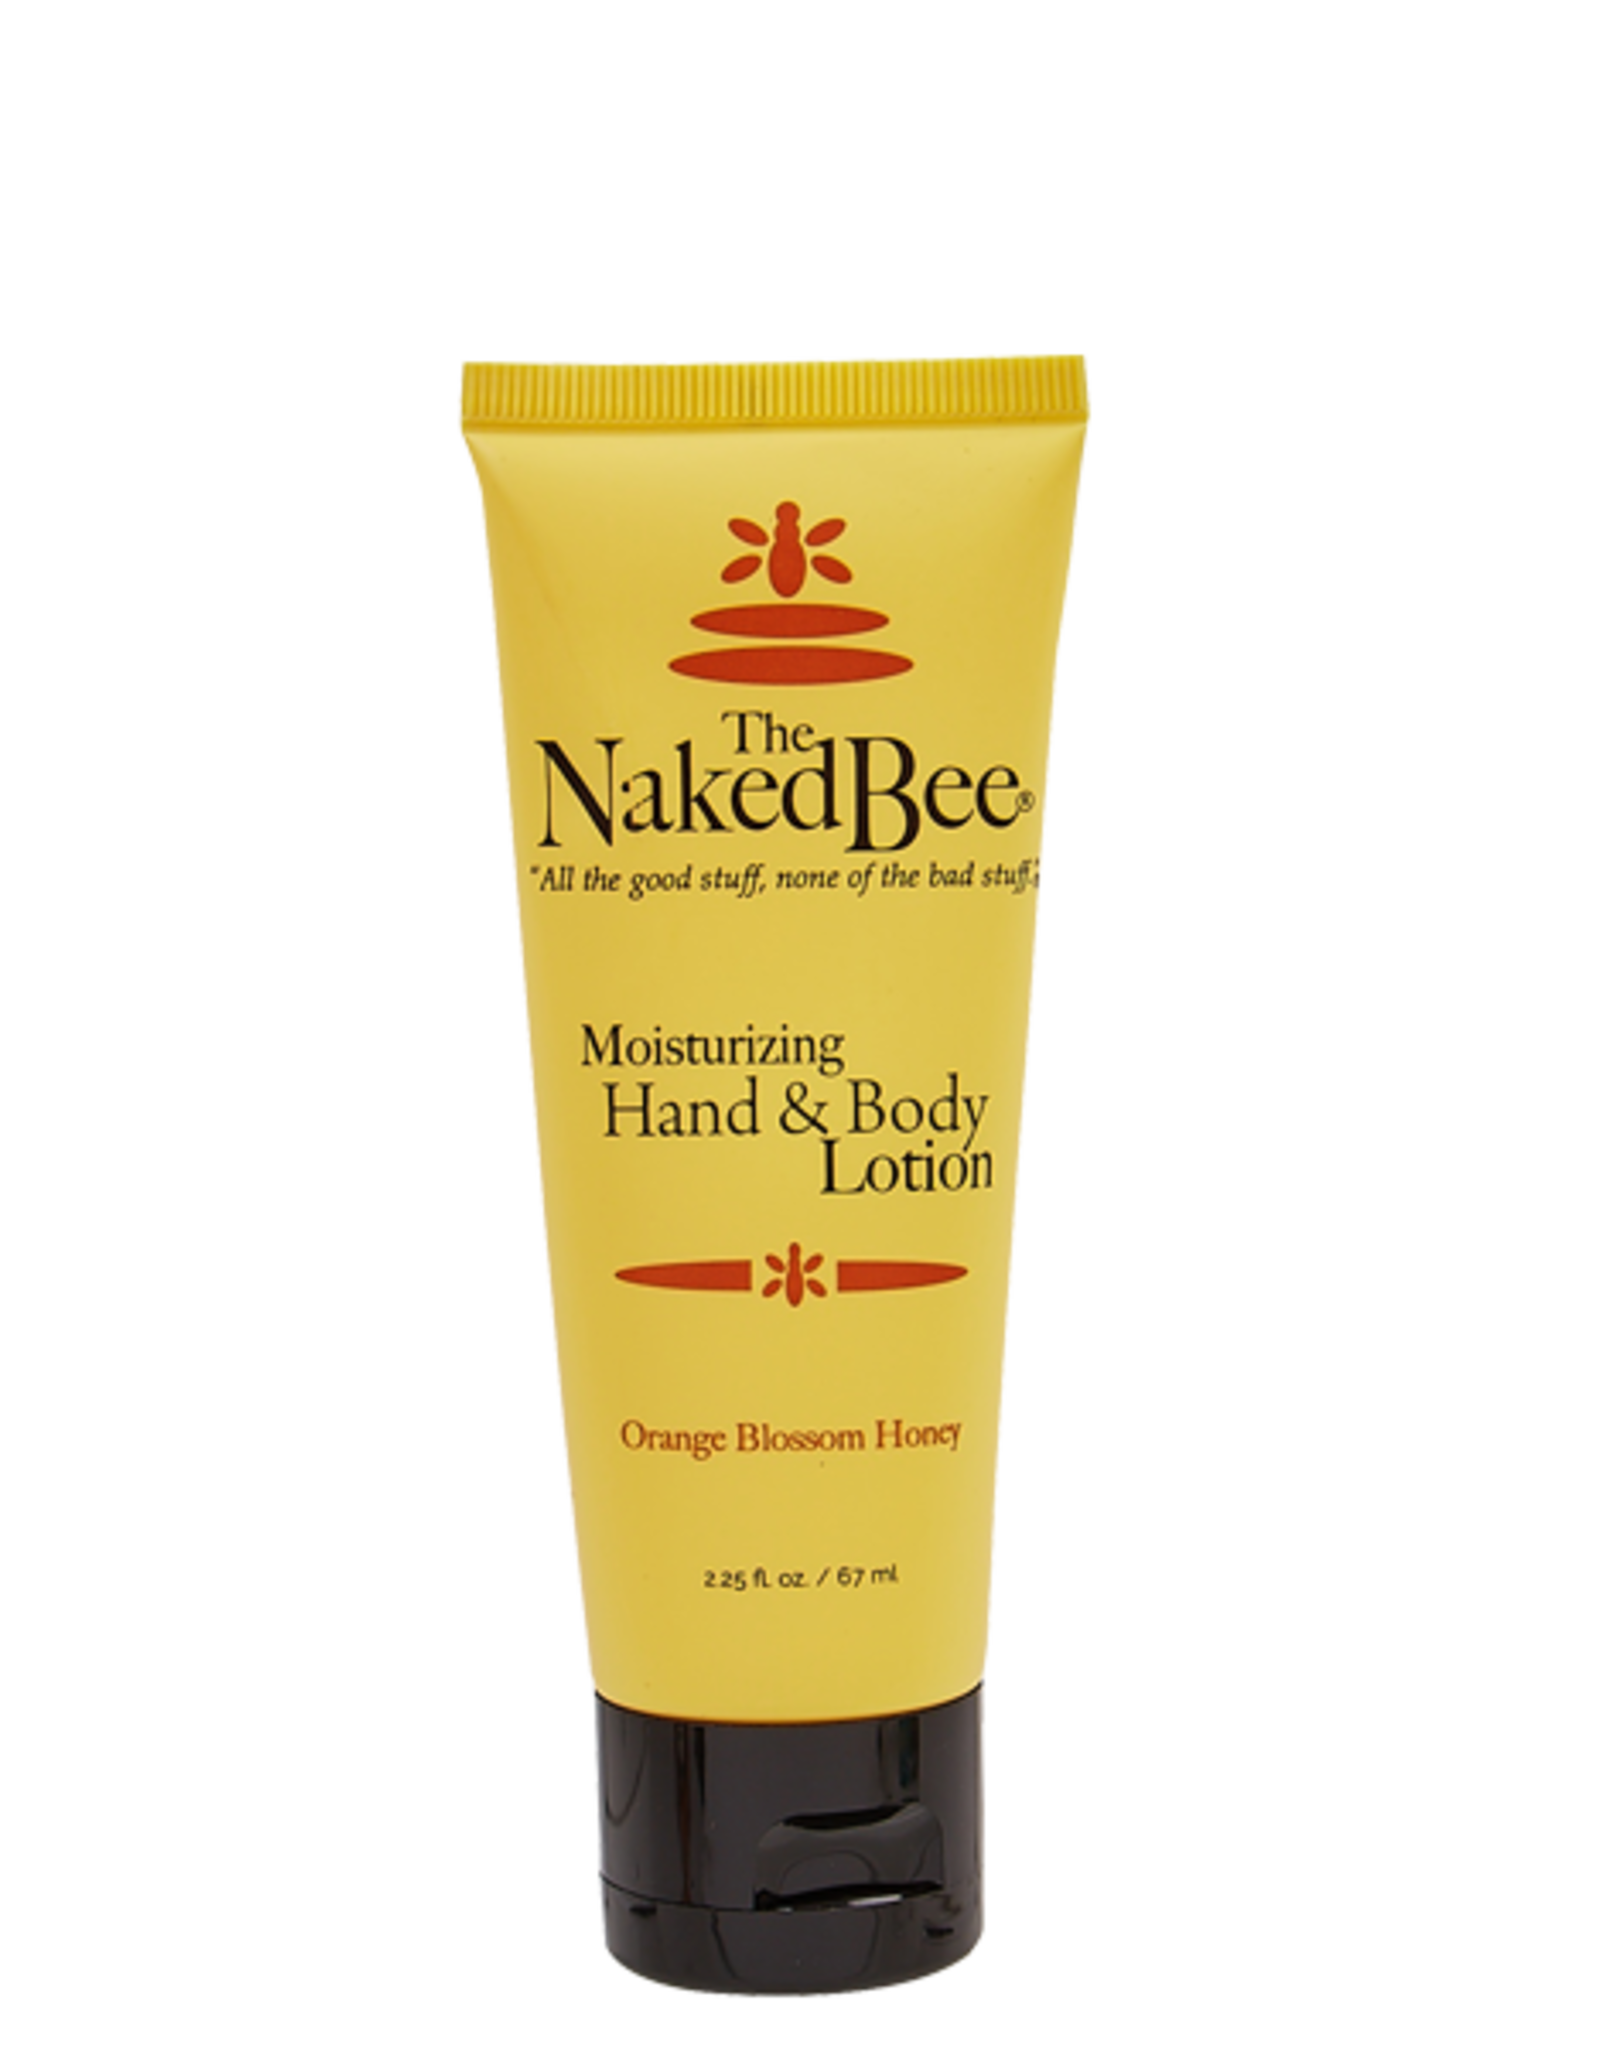 The Naked Bee The Naked Bee | Orange Blossom & Honey Hand and Body Lotion 2.25oz